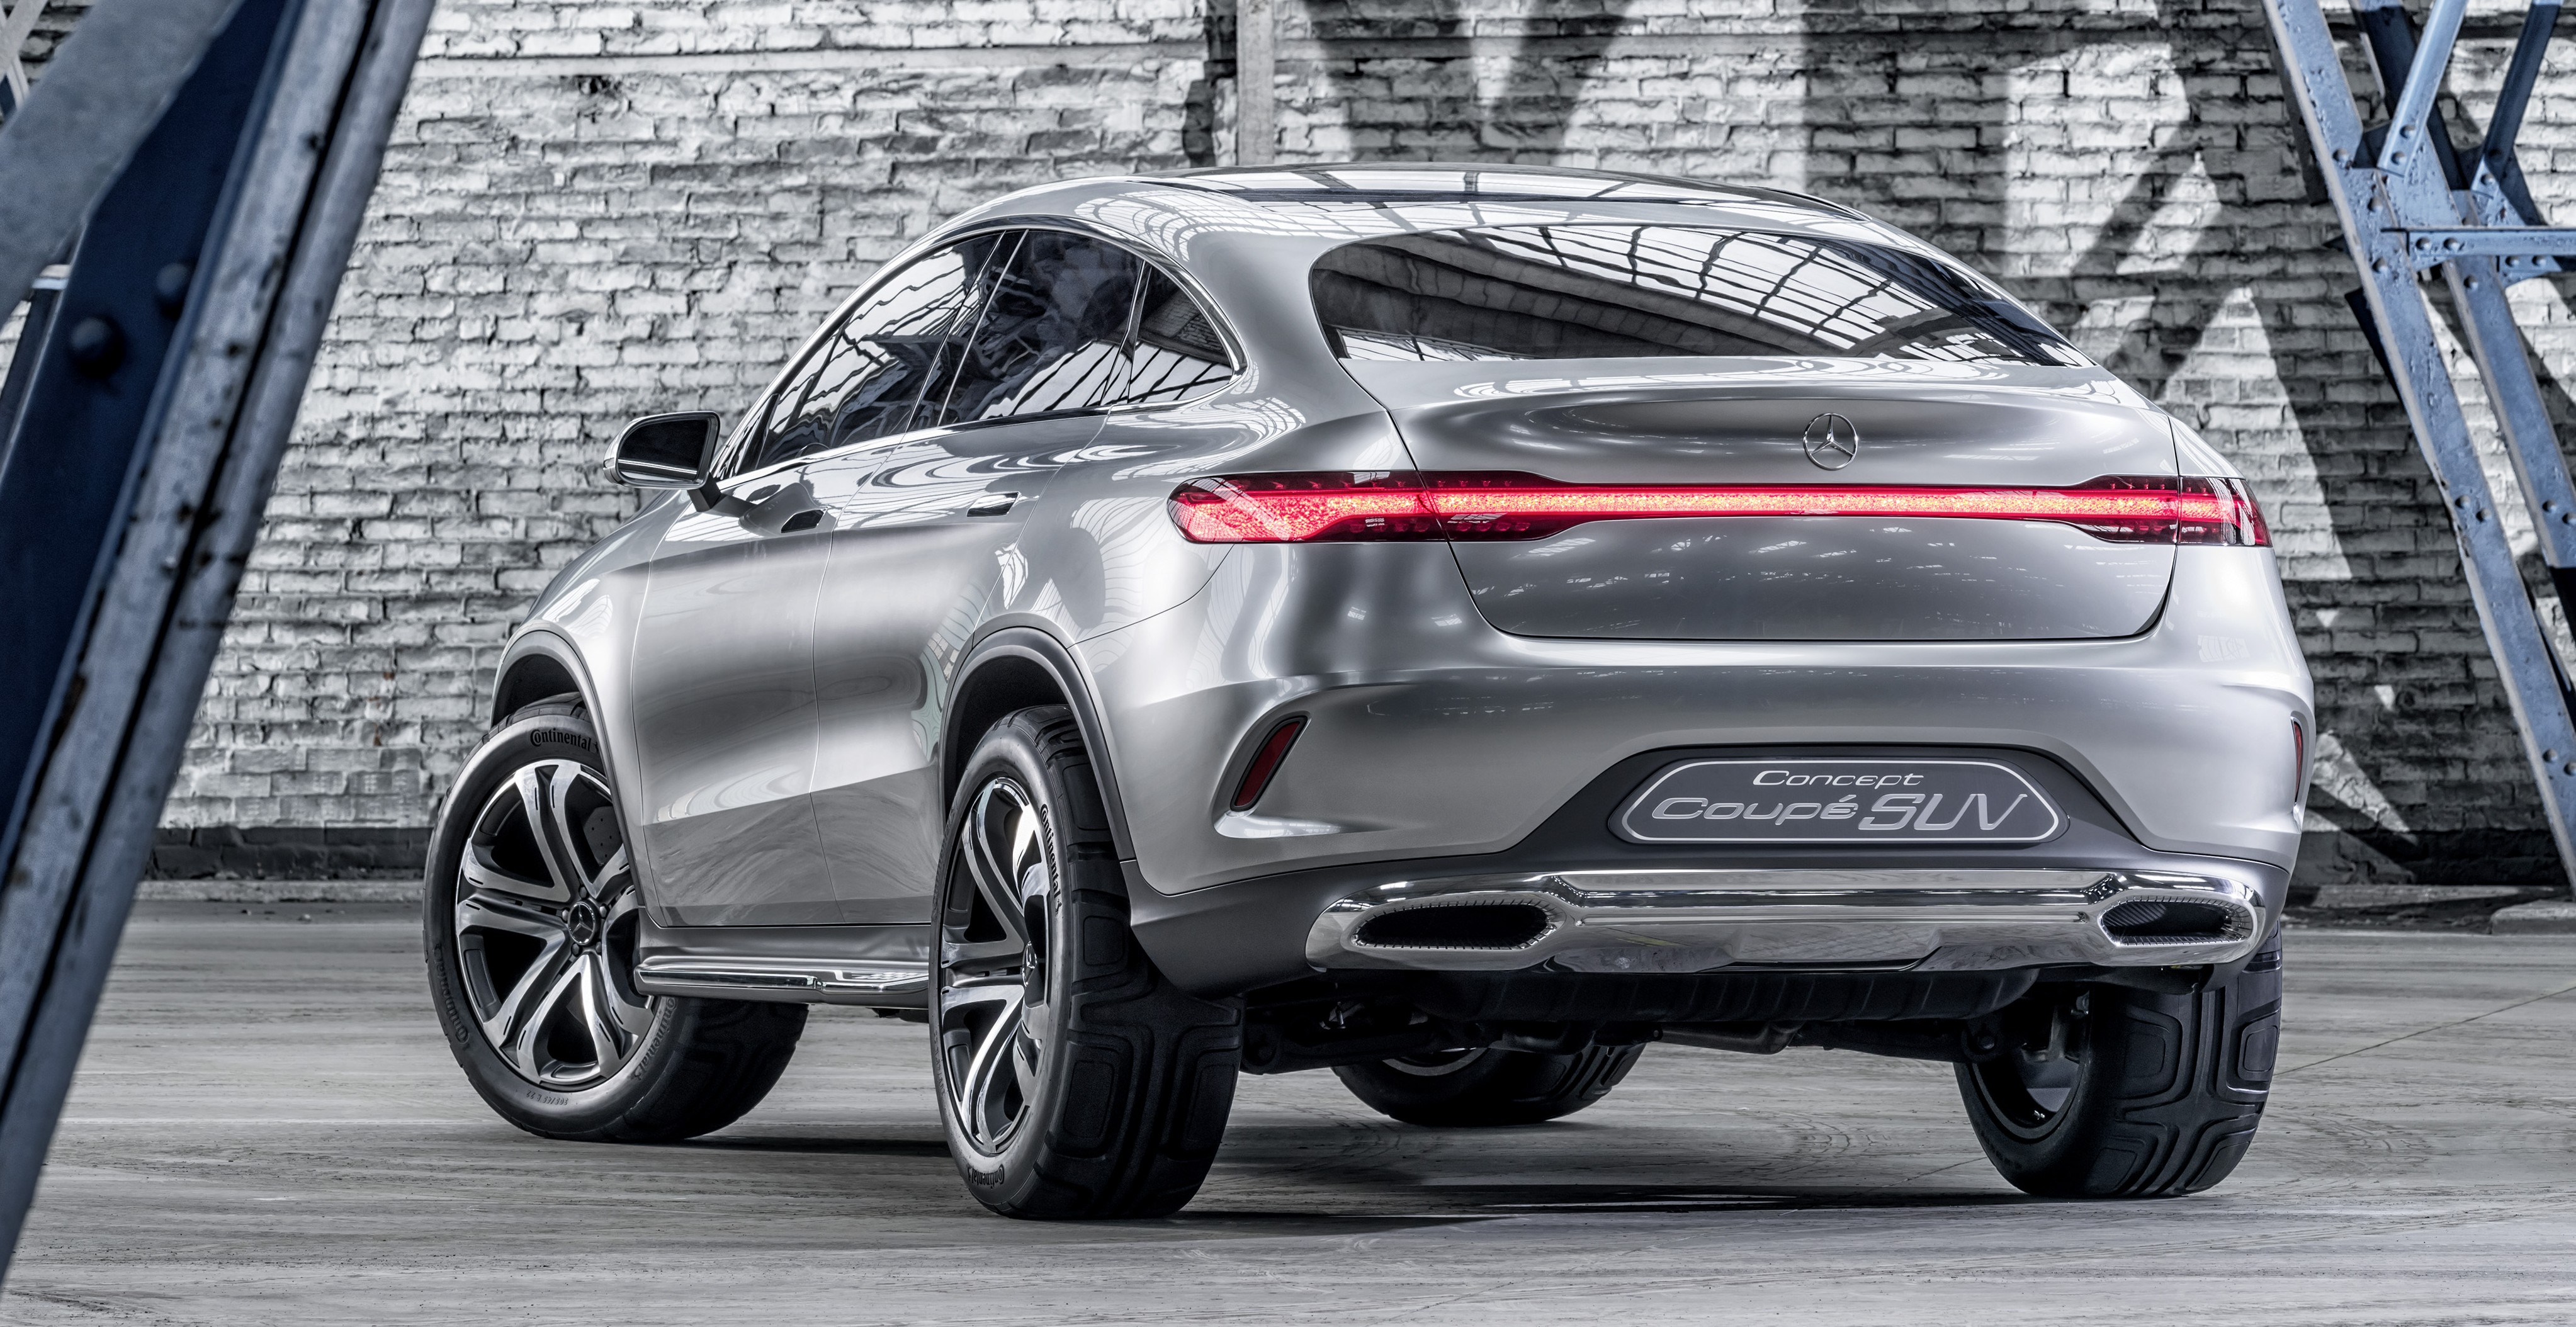 Mercedes benz coupe suv concept previews x6 rival image 242561 for Mercedes benz x6